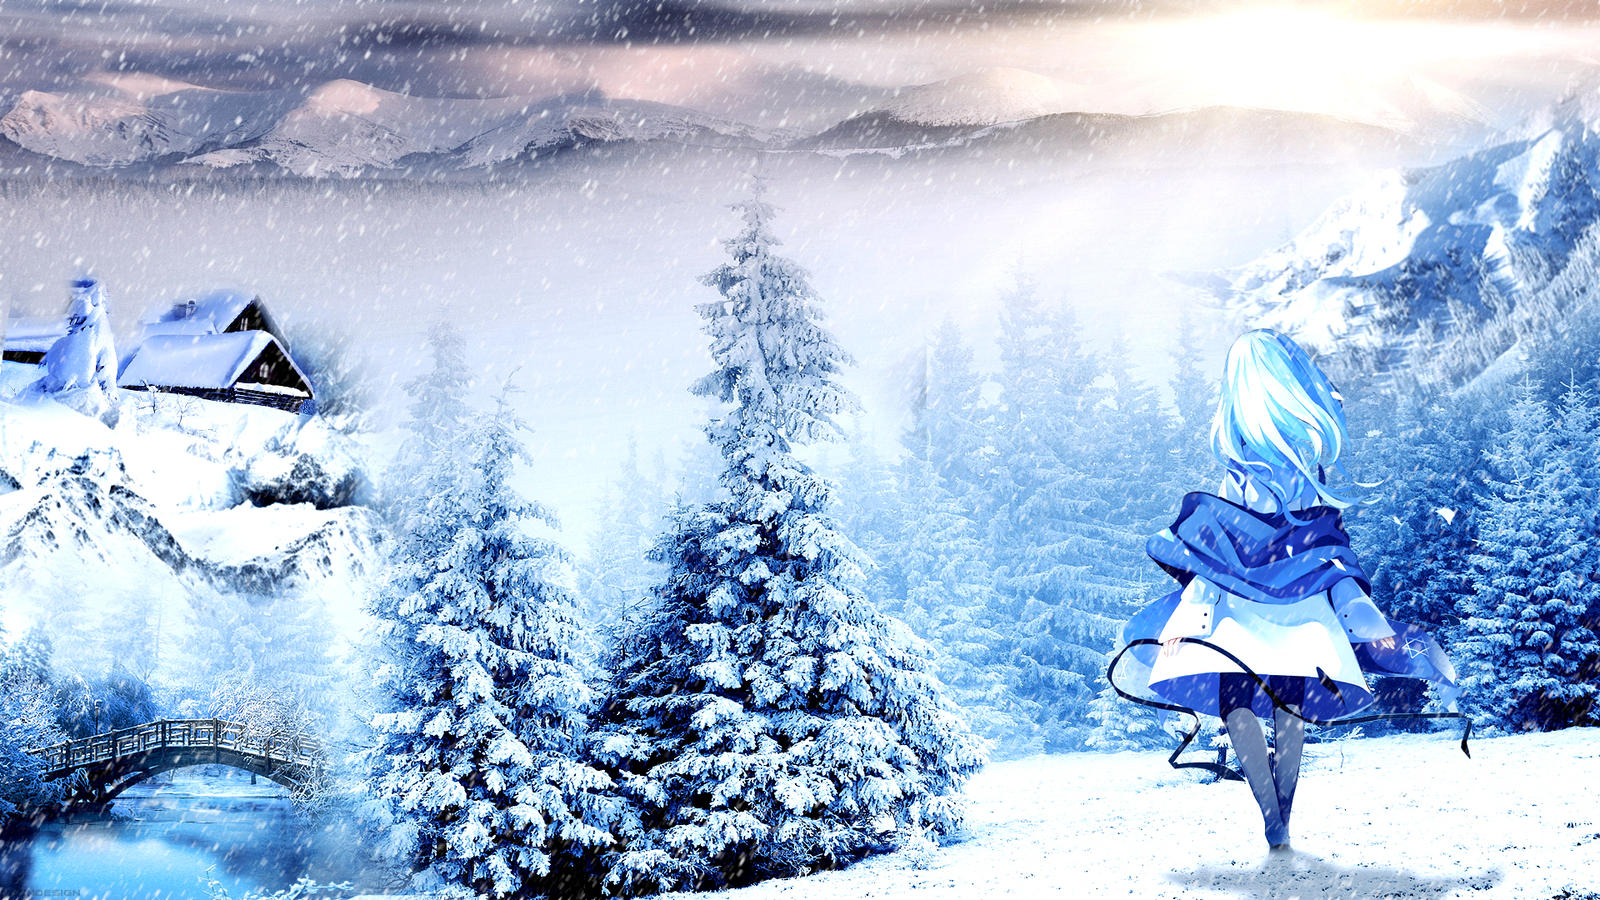 Anime Winter Wallpaper By Atndesign On Deviantart